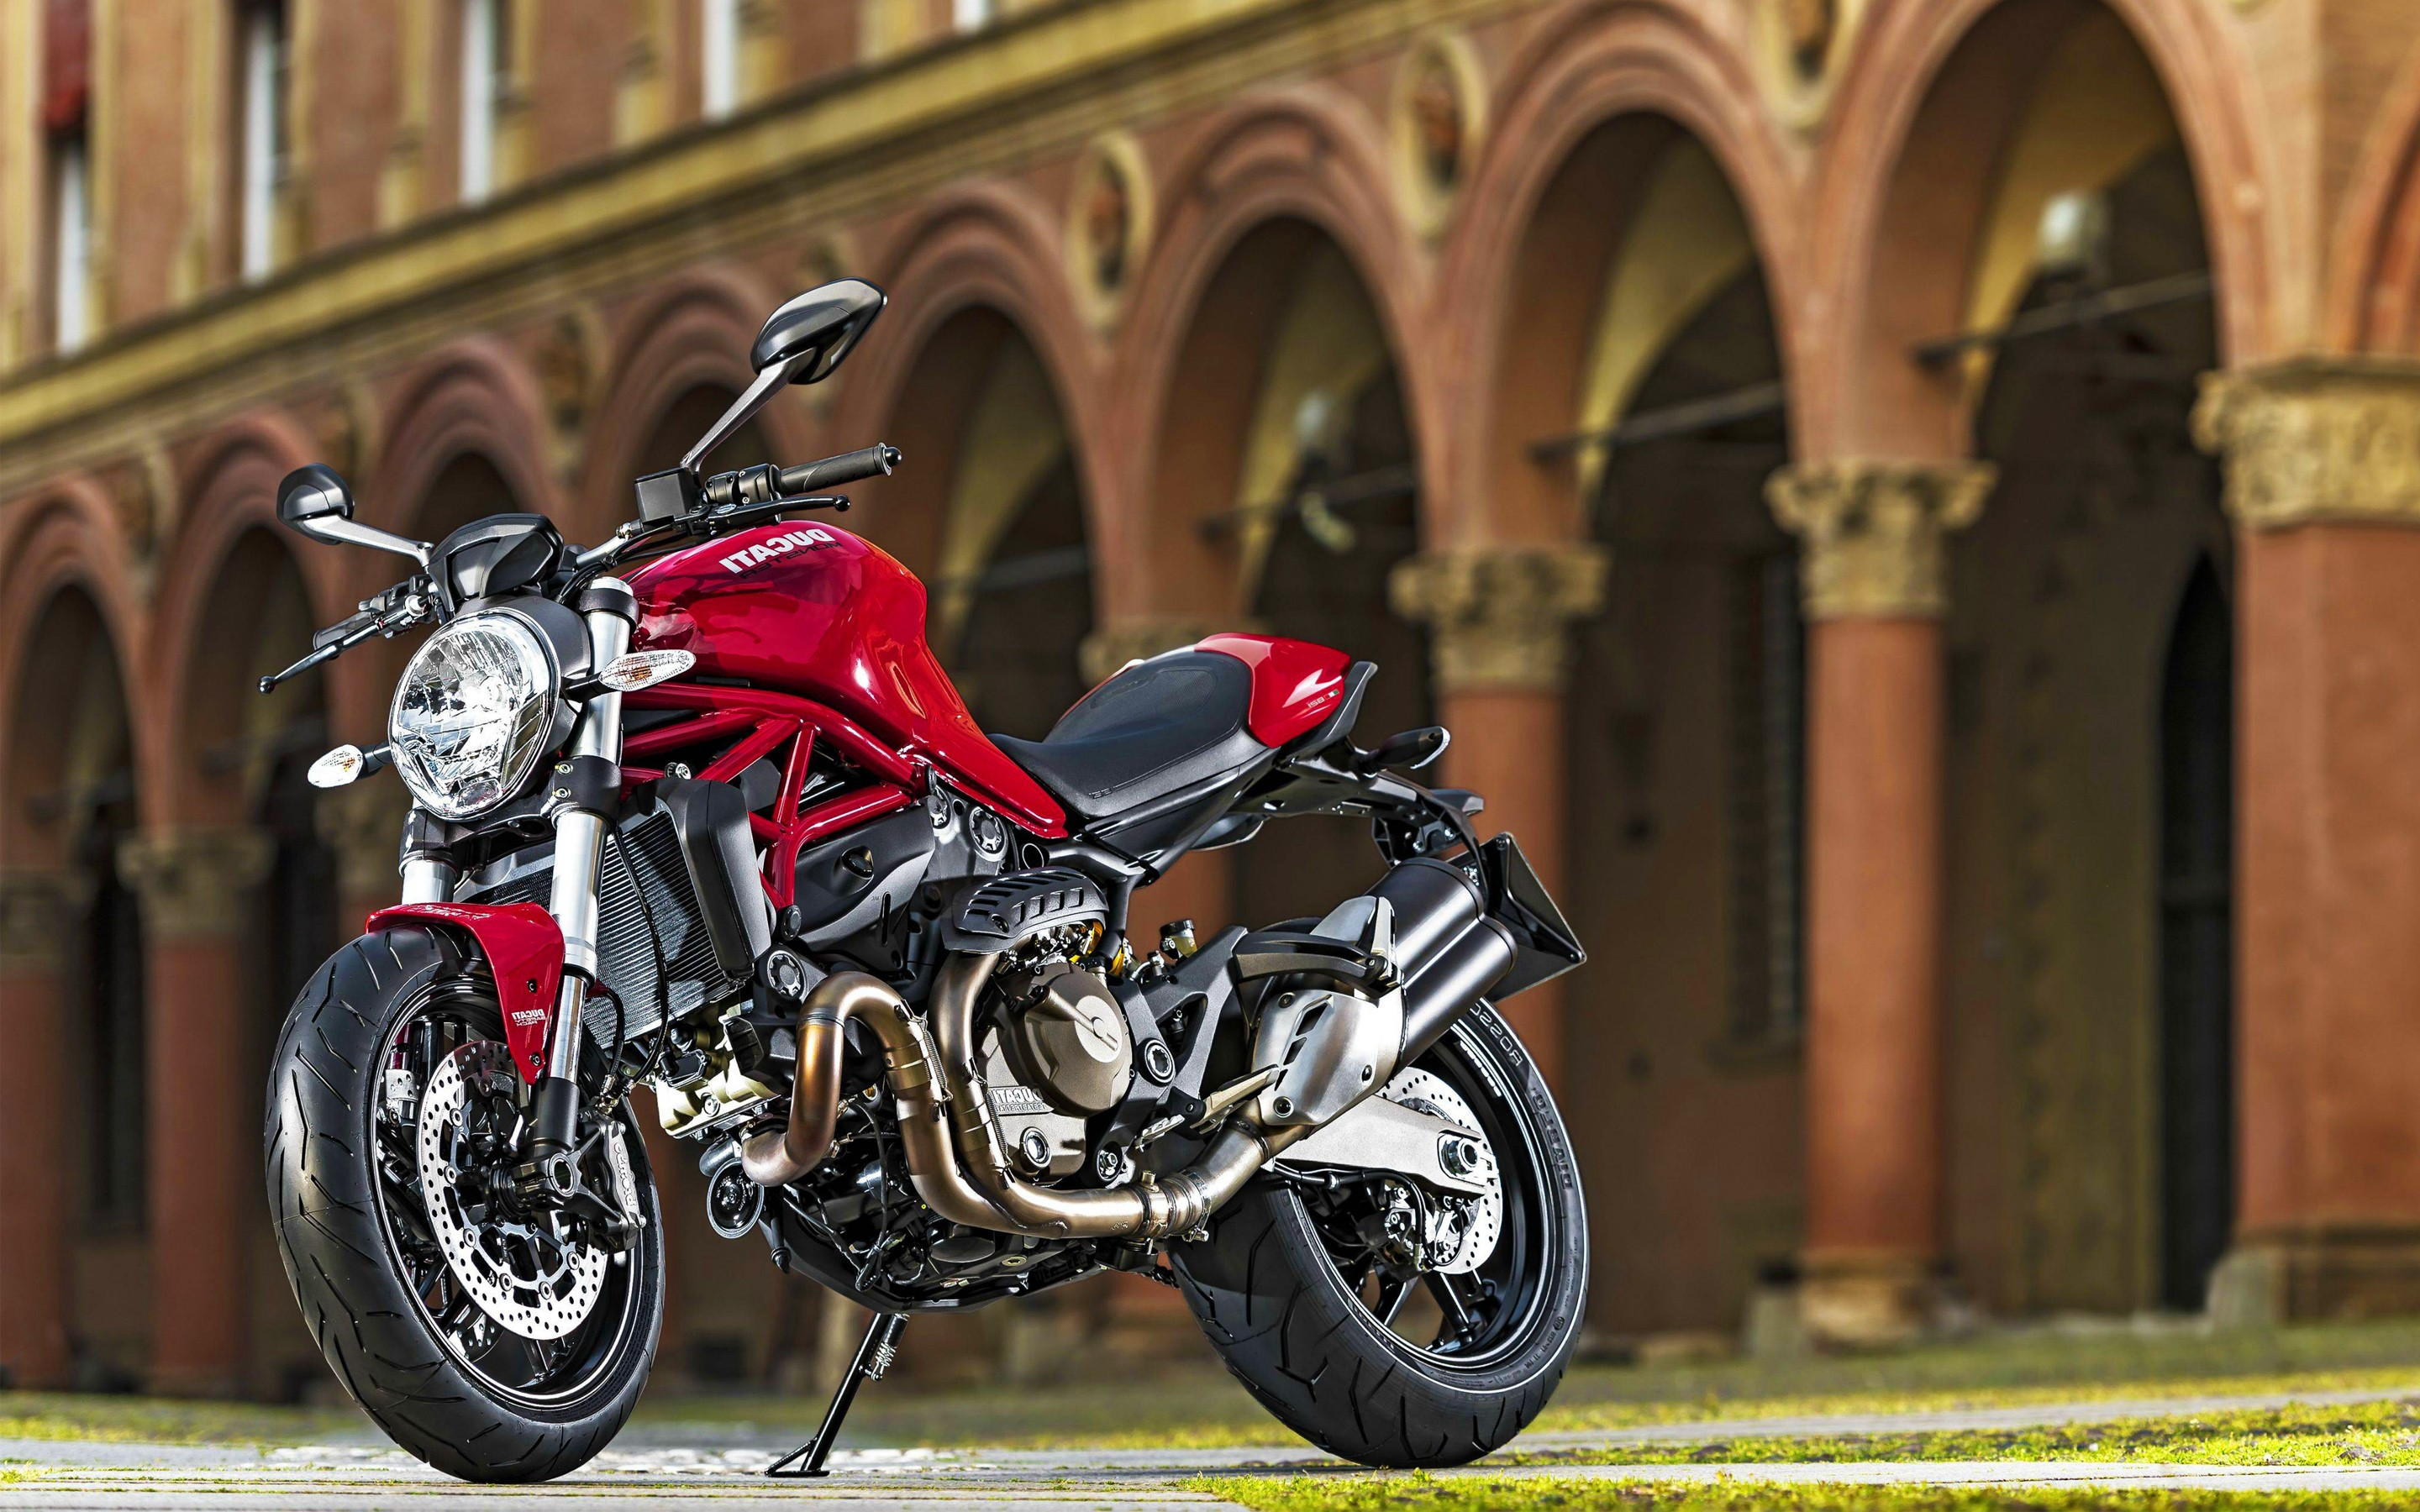 Ducati MOnster 821 2016 2048x1152 Resolution